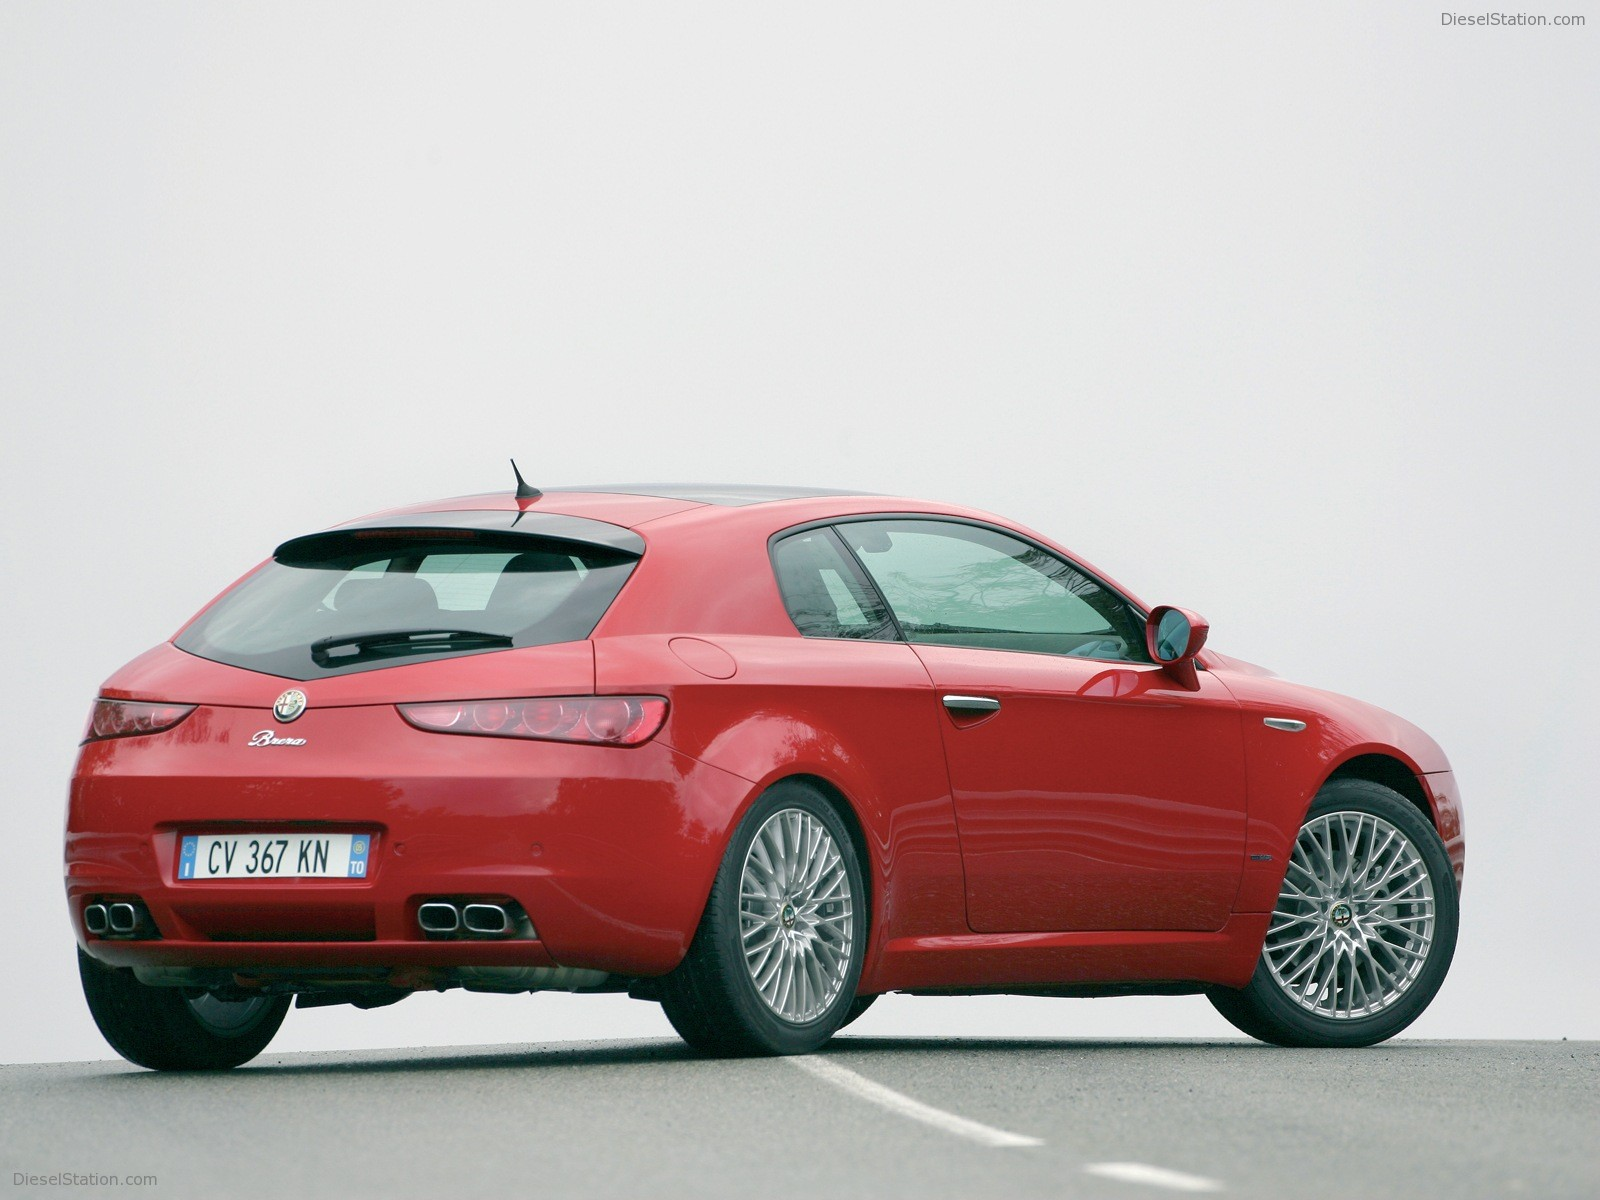 Alfa romeo brera photo - 1